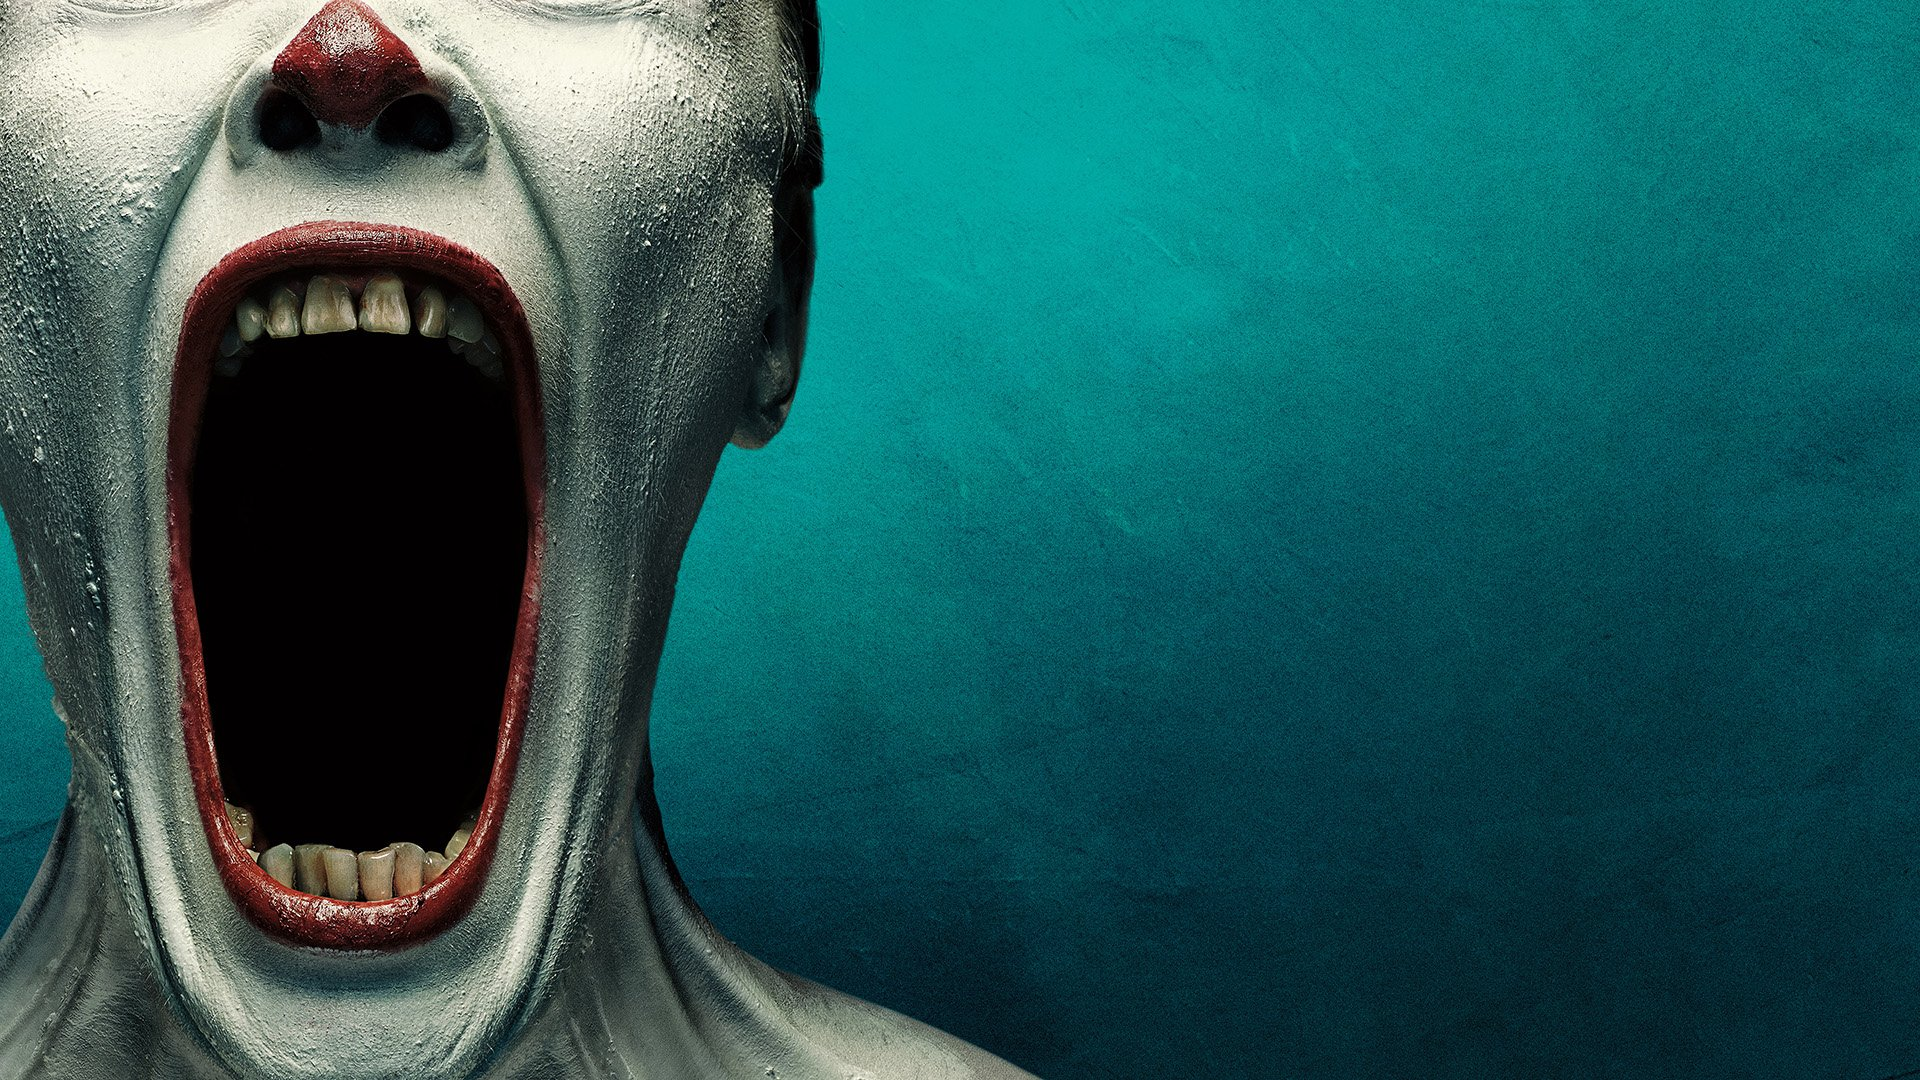 6 American Horror Story Freak Show Hd Wallpapers Background